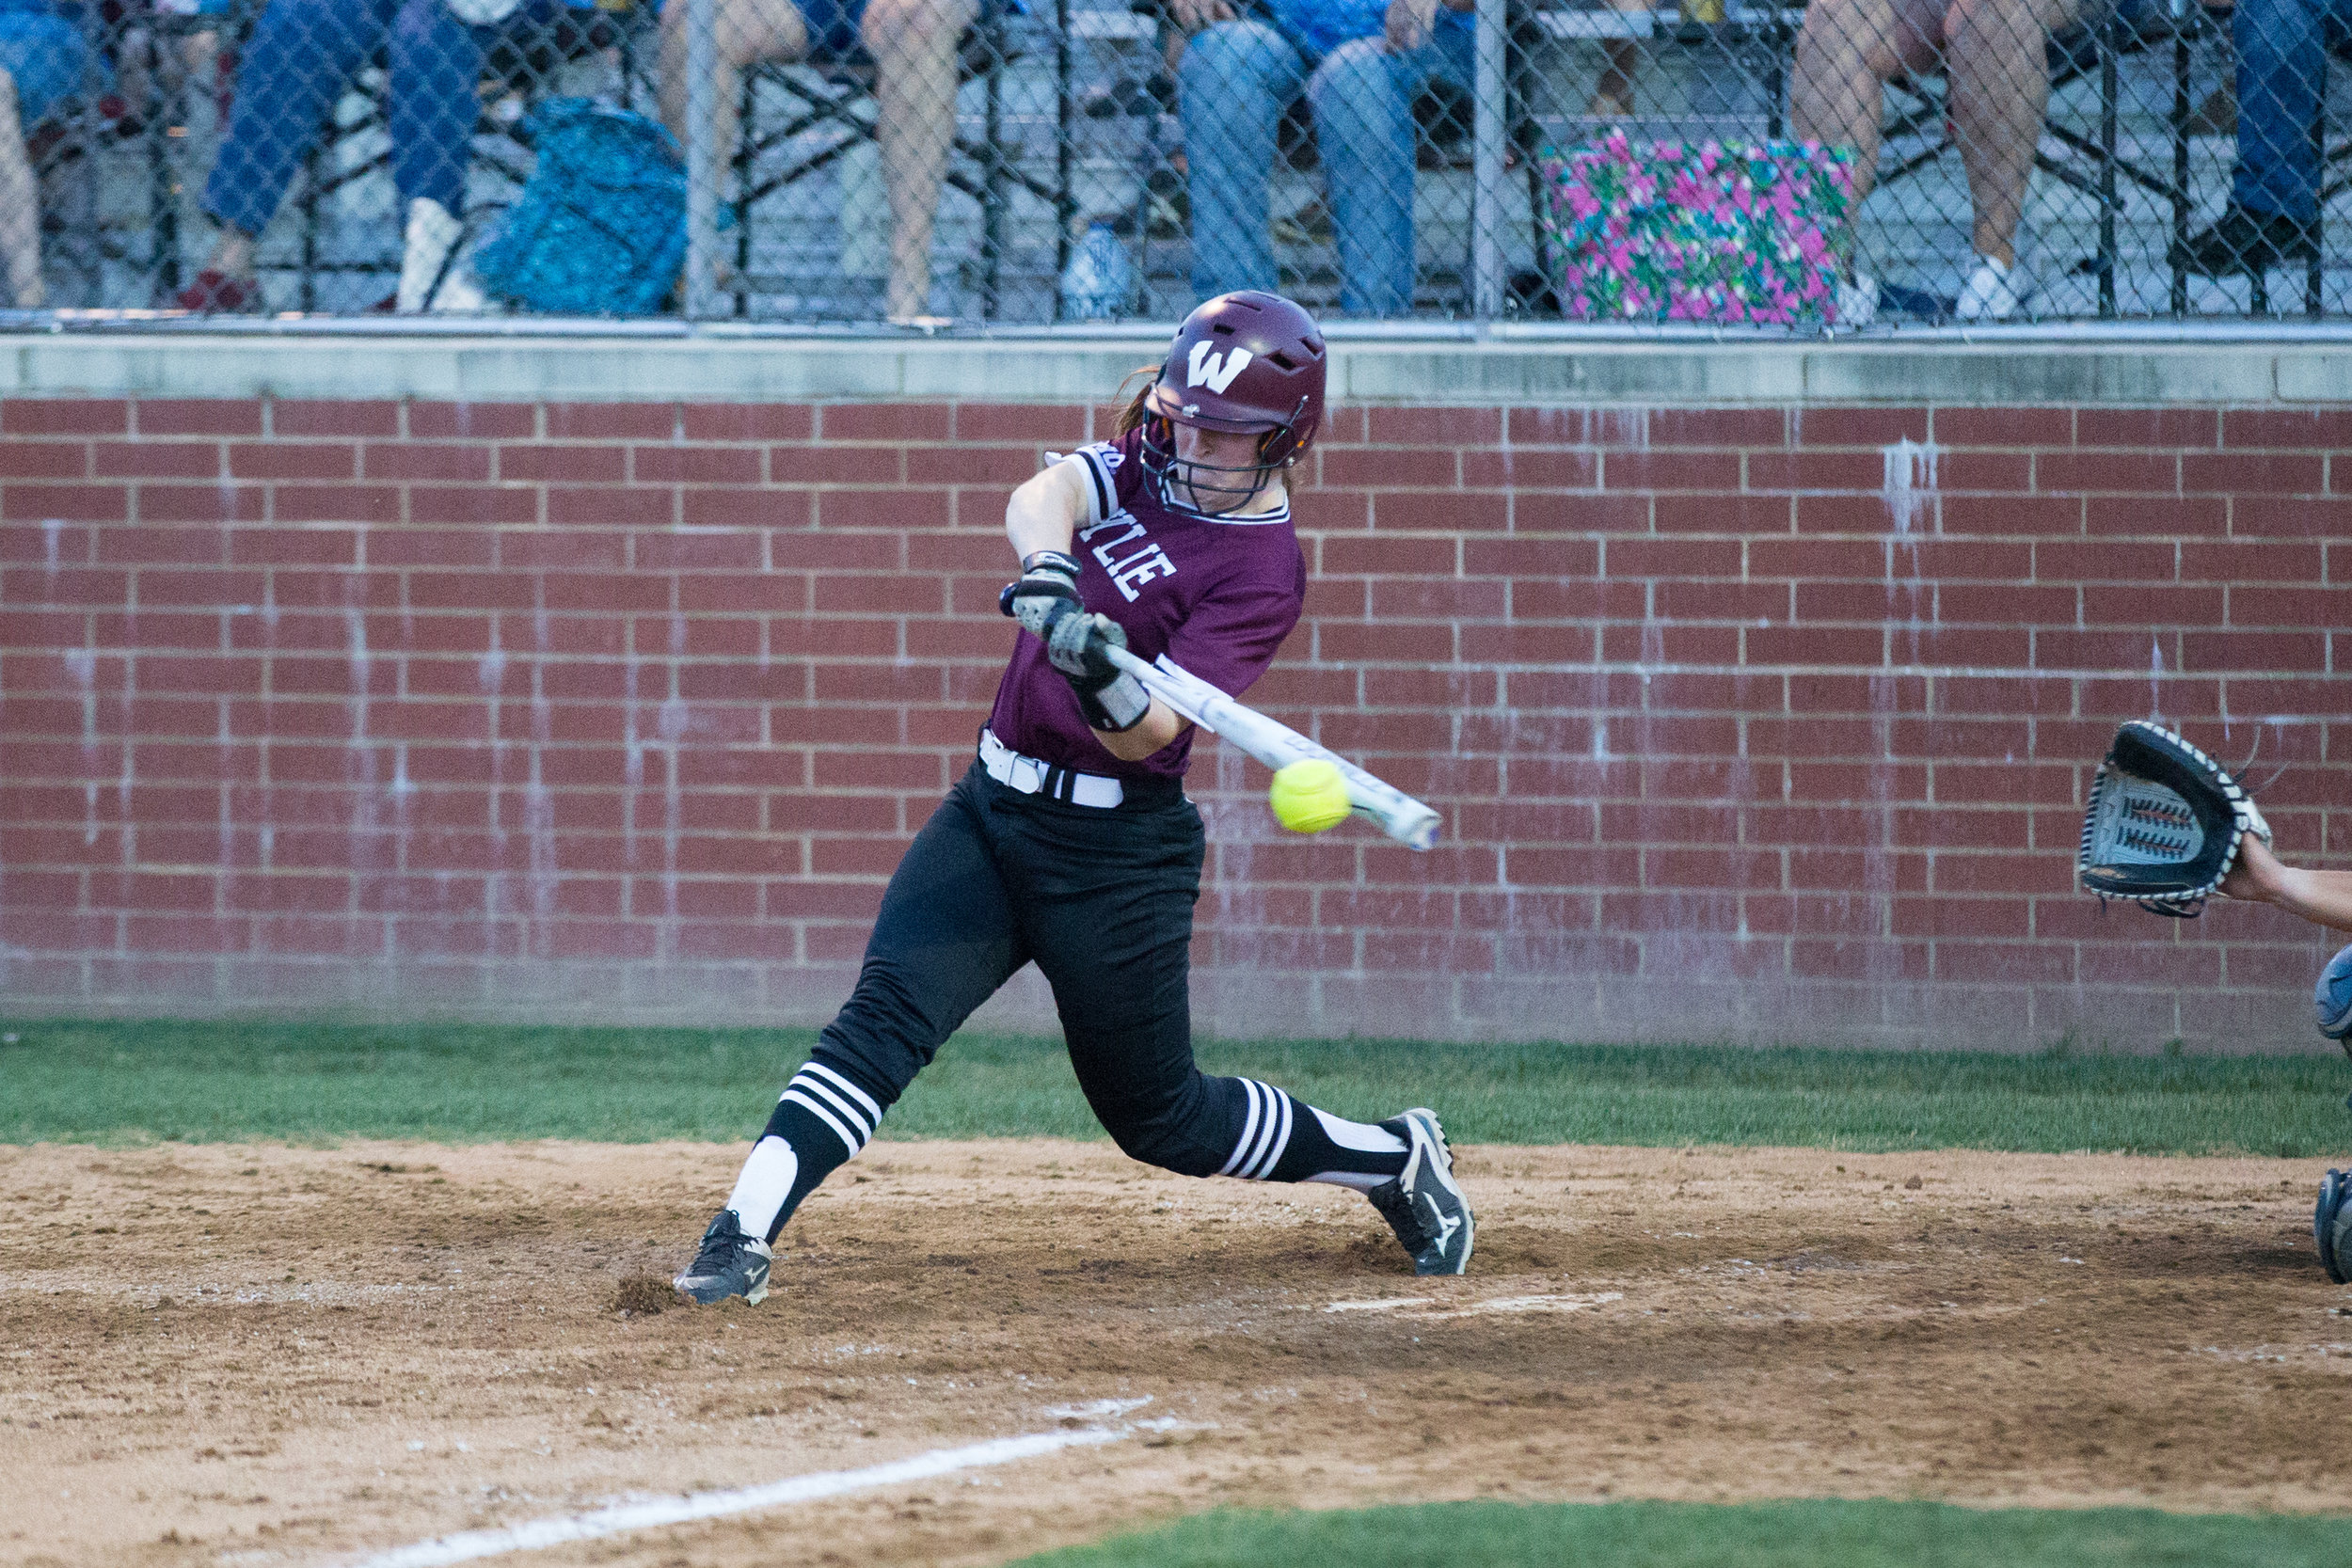 5_18 Wylie Softball-162.jpg